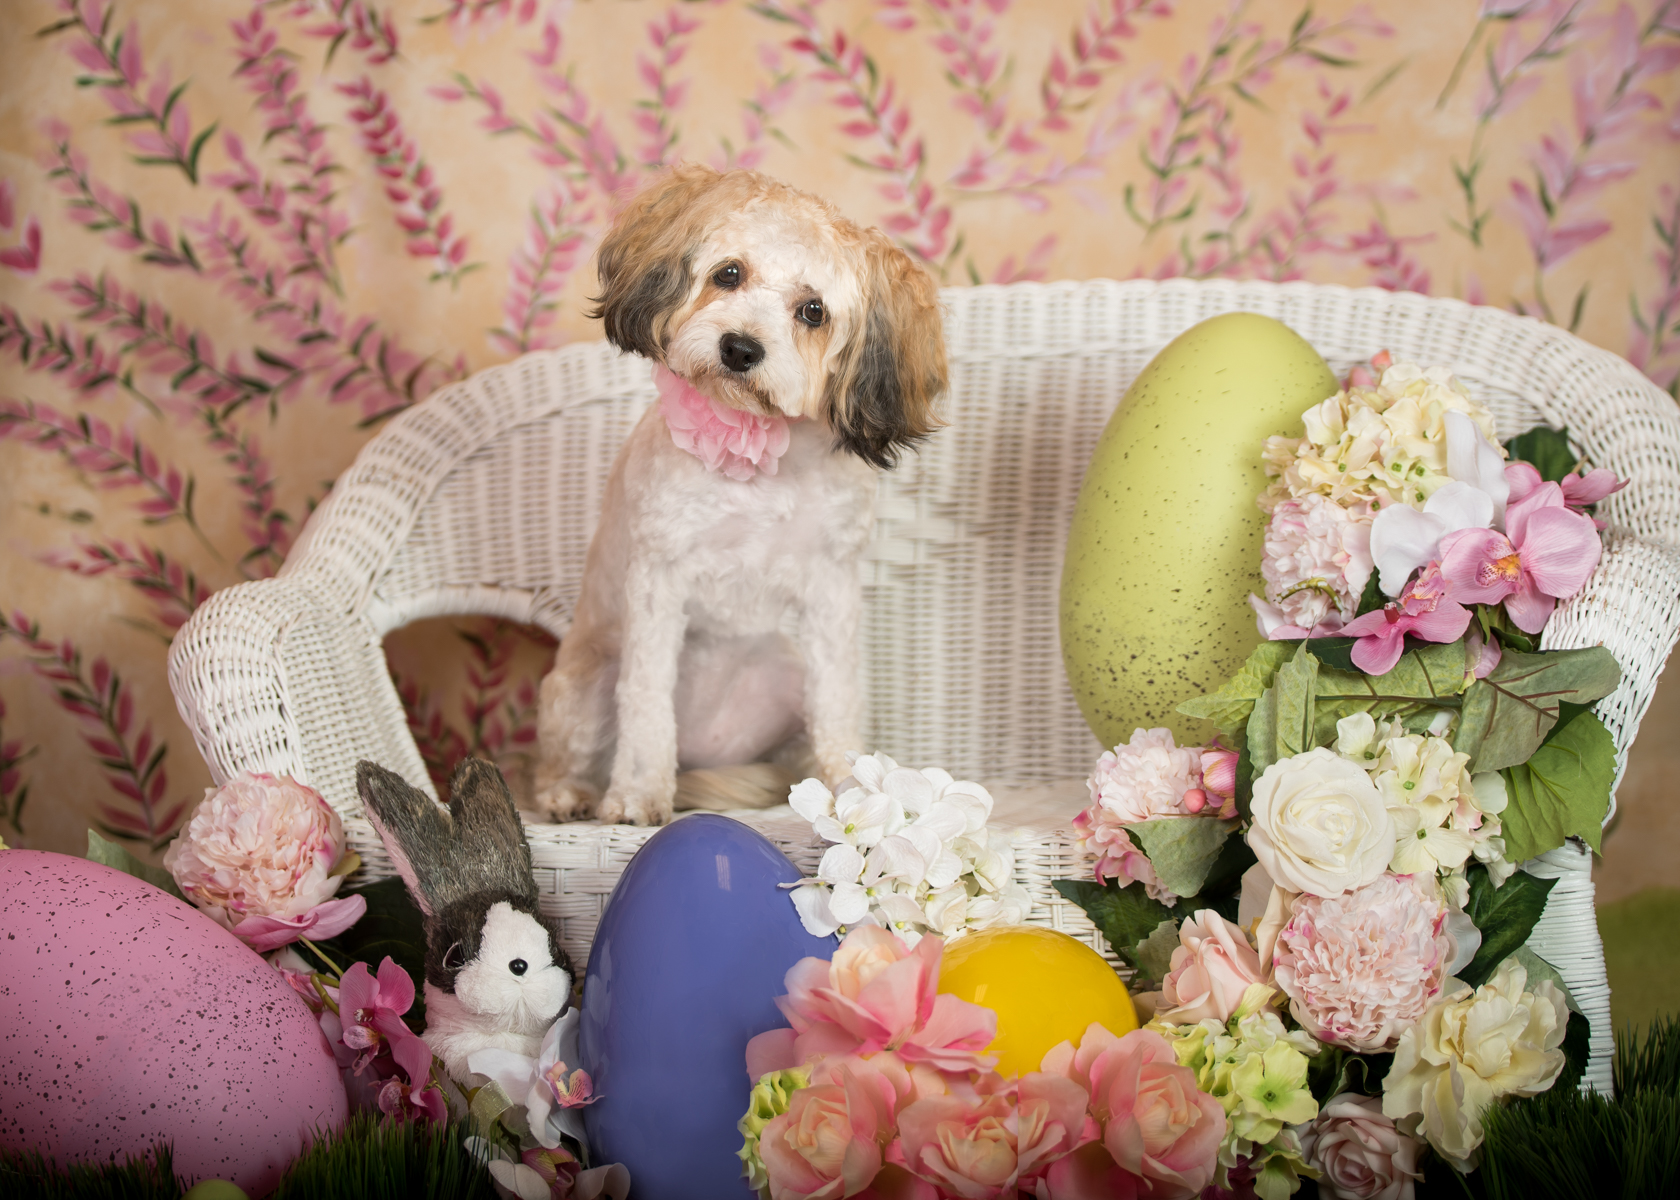 Vasi Siedman Pet Photographer